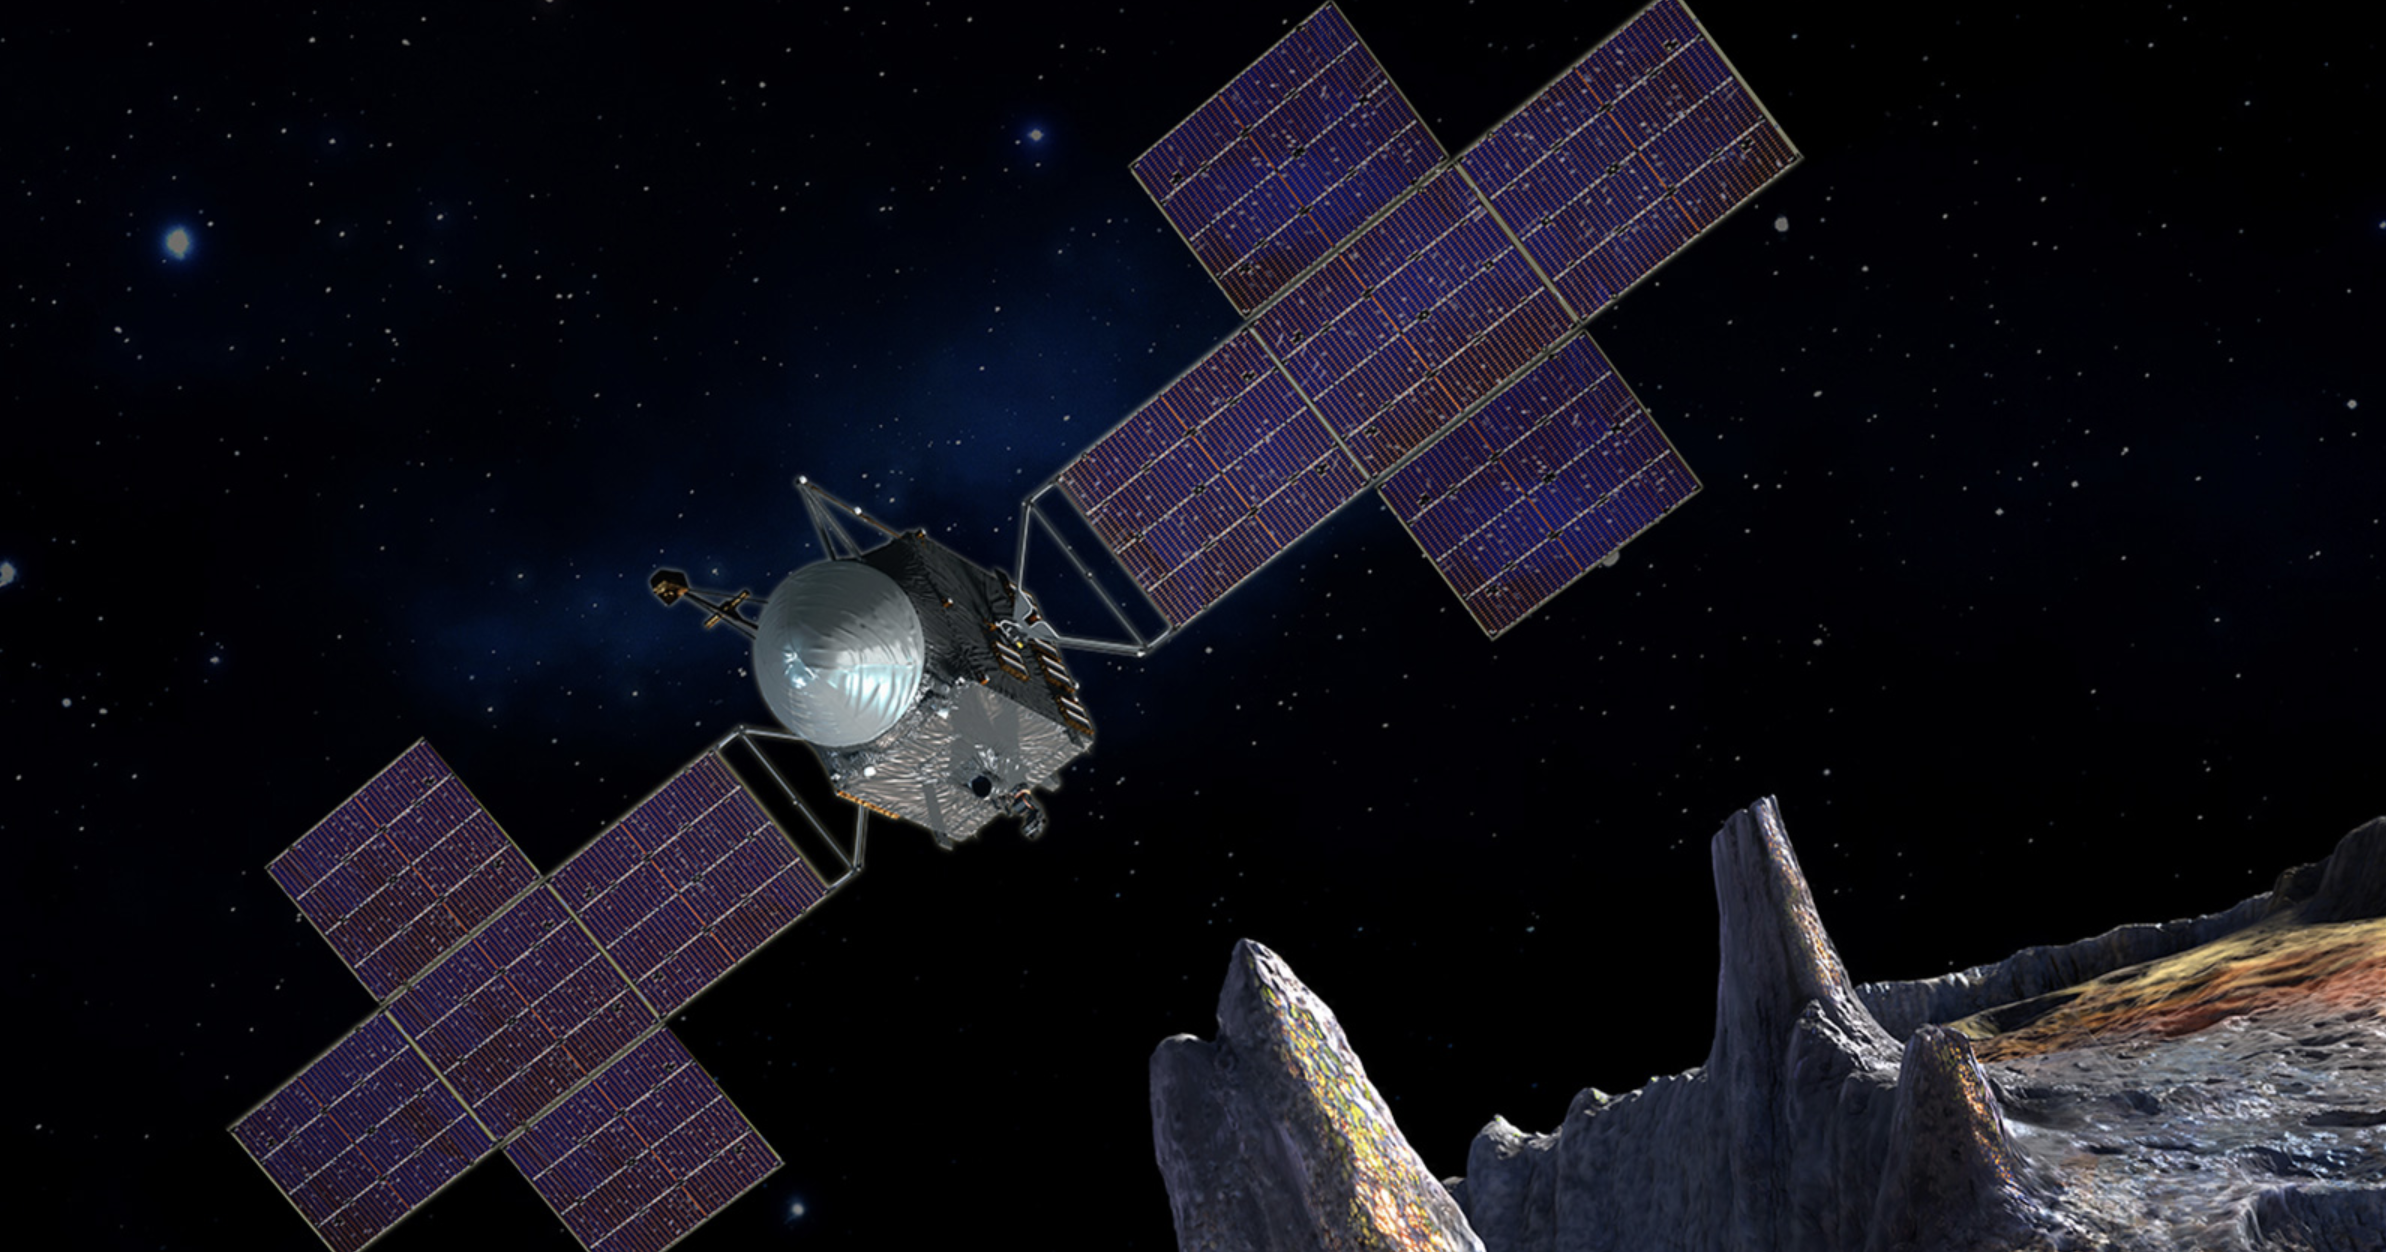 NASA moves to last planning phases for mission to explore 16 Mind's full metal asteroid